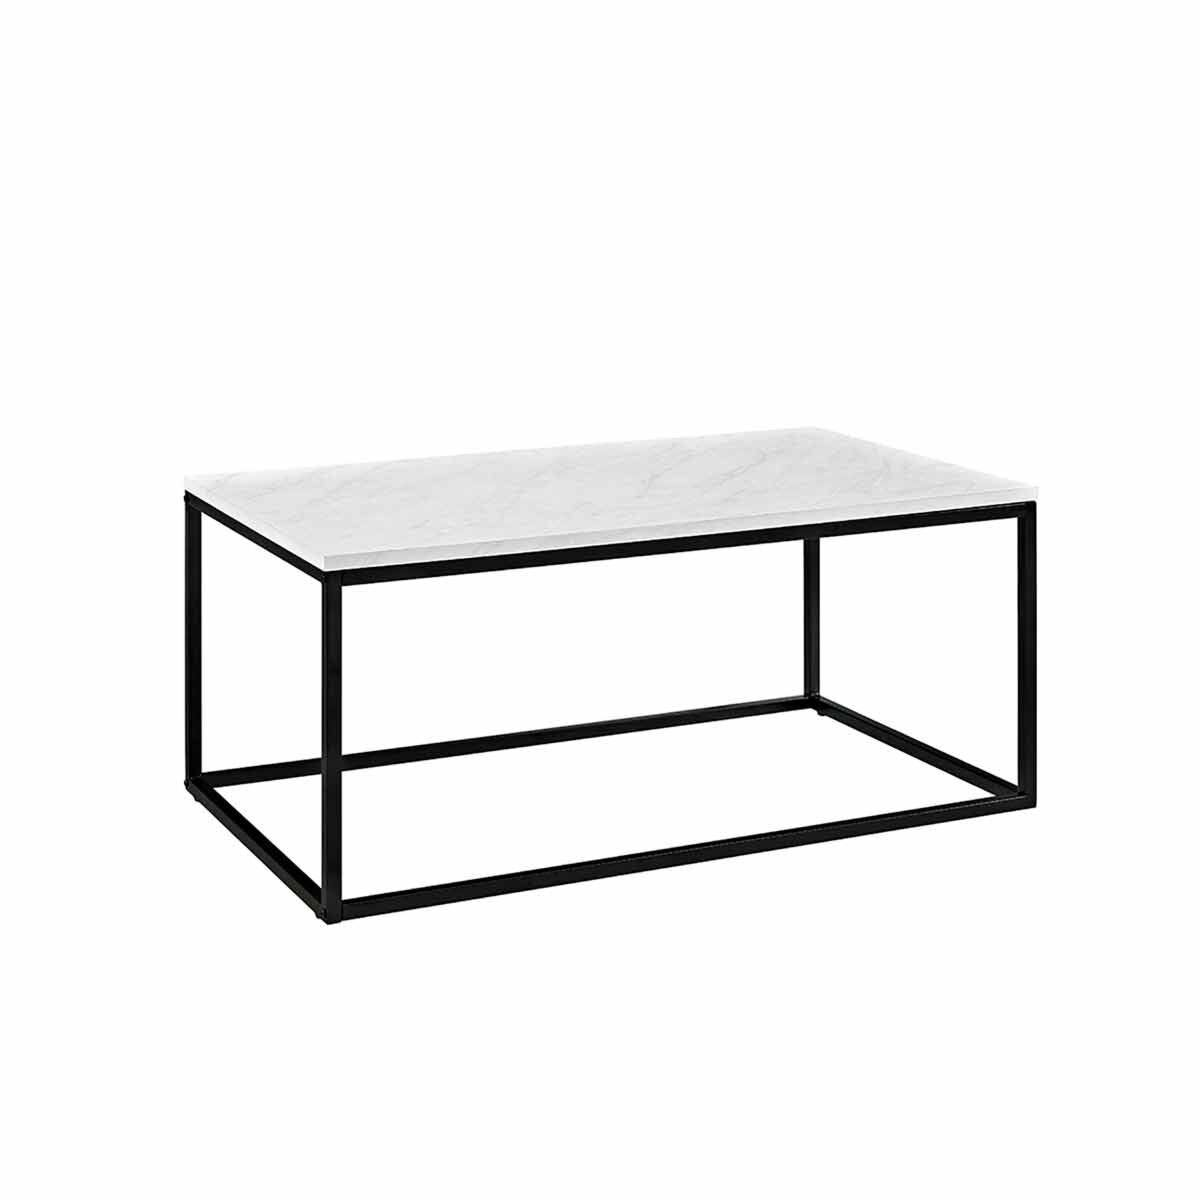 Girona Industrial Coffee Table White Marble